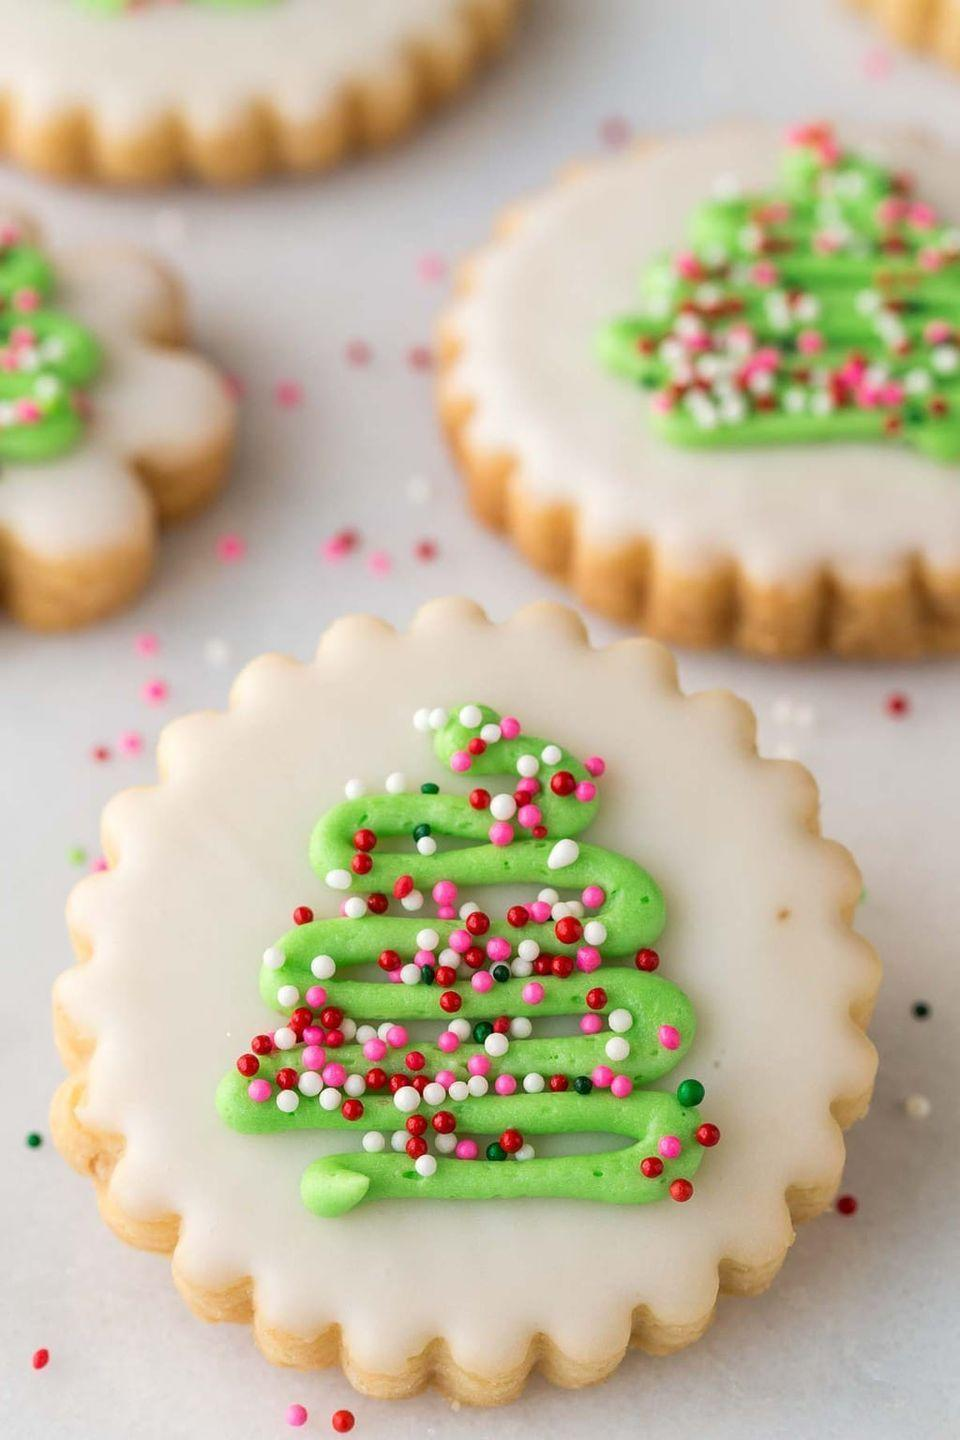 "<p>Not only are these delicate cookies beautiful, but they're also very easy to <a href=""https://www.countryliving.com/food-drinks/g2777/christmas-sugar-cookies/"" rel=""nofollow noopener"" target=""_blank"" data-ylk=""slk:decorate"" class=""link rapid-noclick-resp"">decorate</a>. Just follow this blogger's tips and tricks and your batch will look just as stunning as hers.</p><p><strong>Get the recipe at <a href=""https://thecafesucrefarine.com/christmas-shortbread-cookies/"" rel=""nofollow noopener"" target=""_blank"" data-ylk=""slk:The Café Sucre Farine"" class=""link rapid-noclick-resp"">The Café Sucre Farine</a>.</strong><br></p><p><strong><a class=""link rapid-noclick-resp"" href=""https://www.amazon.com/Wilton-5-Round-Decorating-Tip/dp/B00DSNP3IK?tag=syn-yahoo-20&ascsubtag=%5Bartid%7C10050.g.647%5Bsrc%7Cyahoo-us"" rel=""nofollow noopener"" target=""_blank"" data-ylk=""slk:SHOP DECORATING TIPS"">SHOP DECORATING TIPS</a><br></strong></p>"